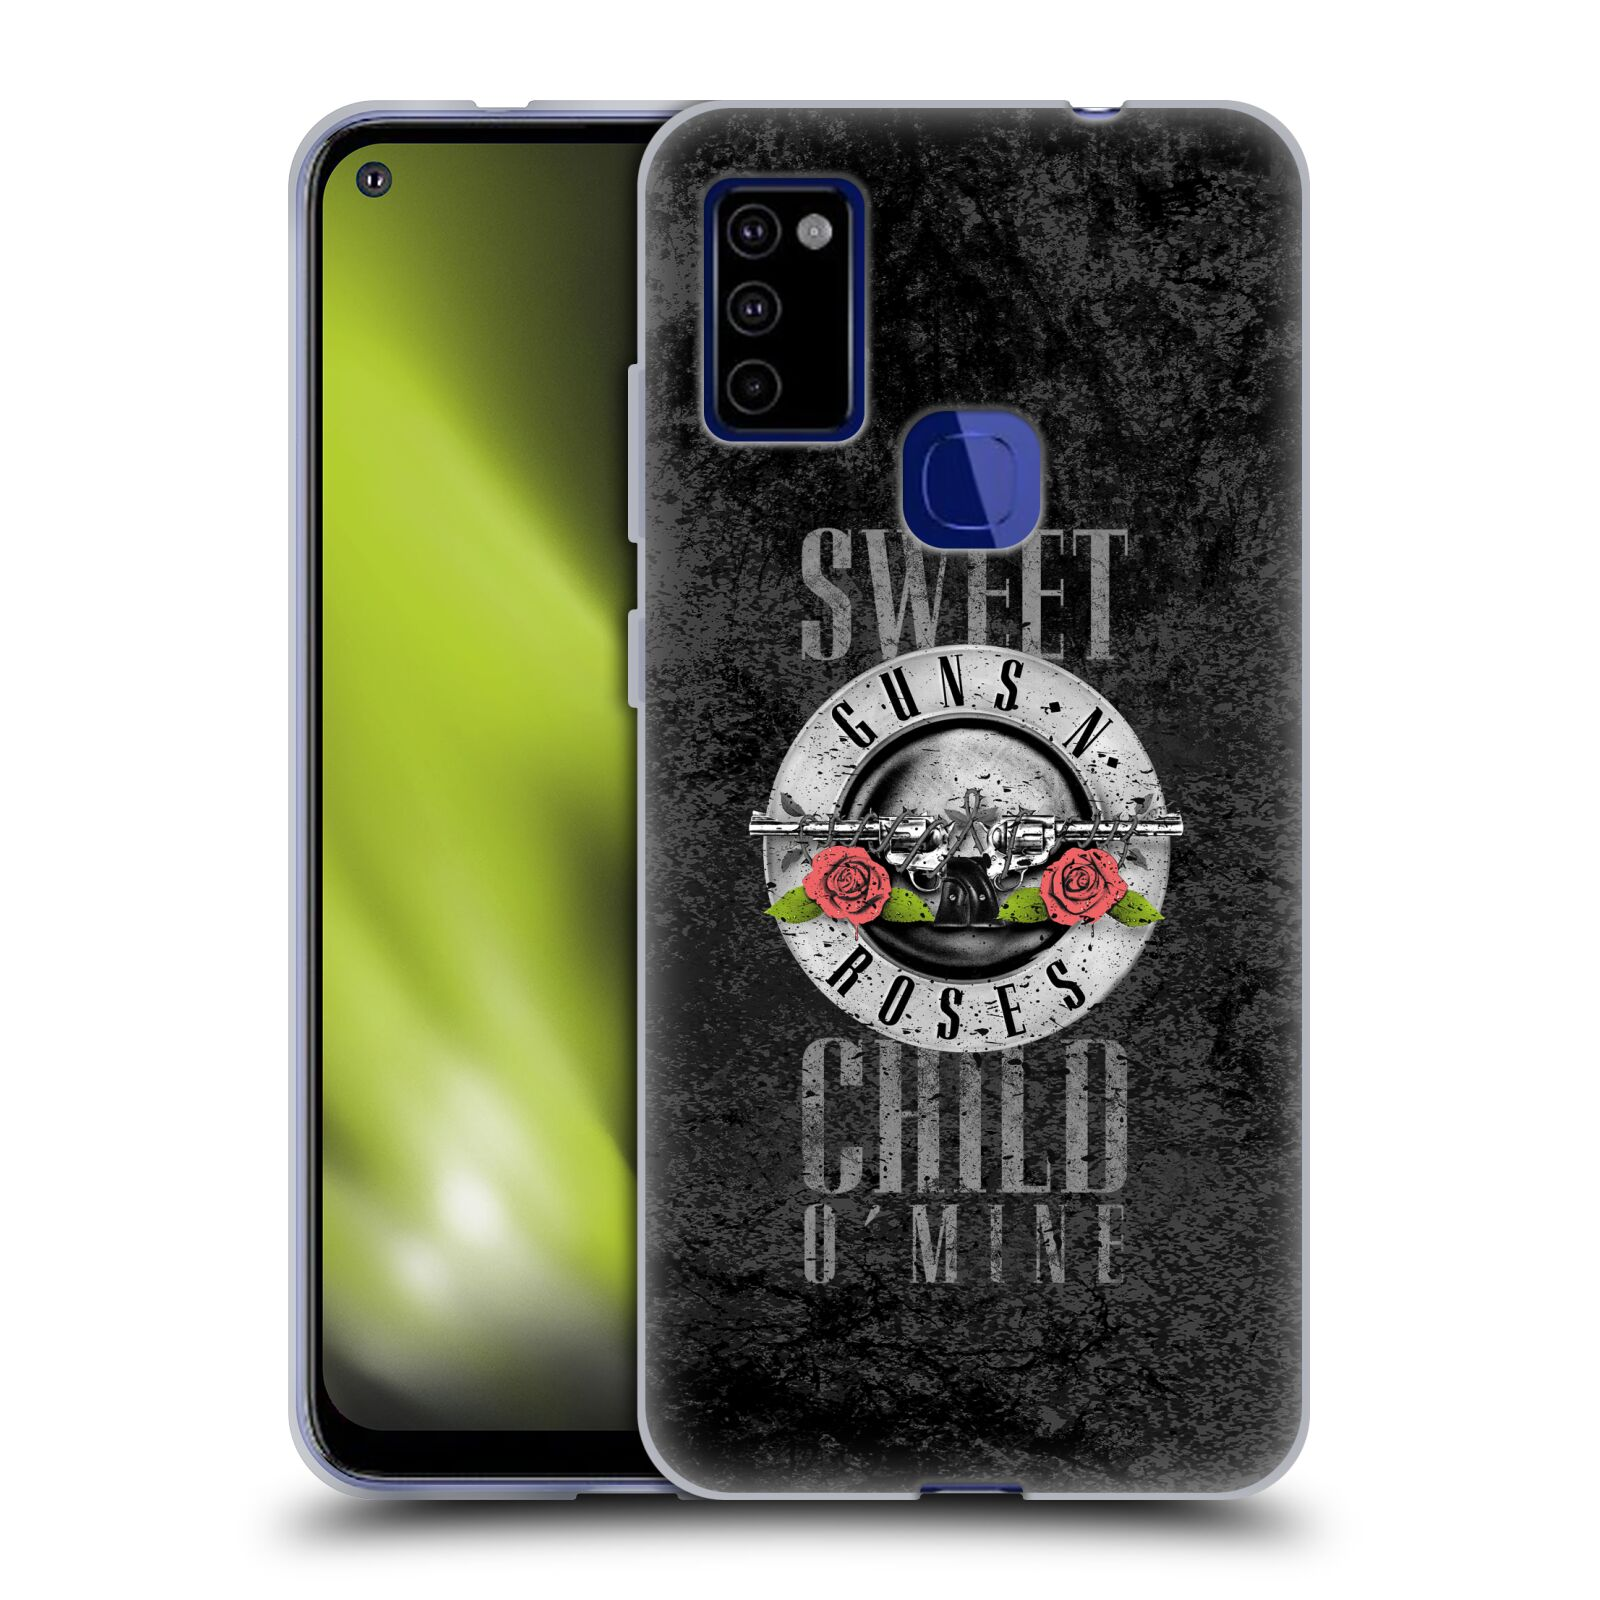 Silikonové pouzdro na mobil Samsung Galaxy M51 - Head Case - Guns N' Roses - Sweet Child